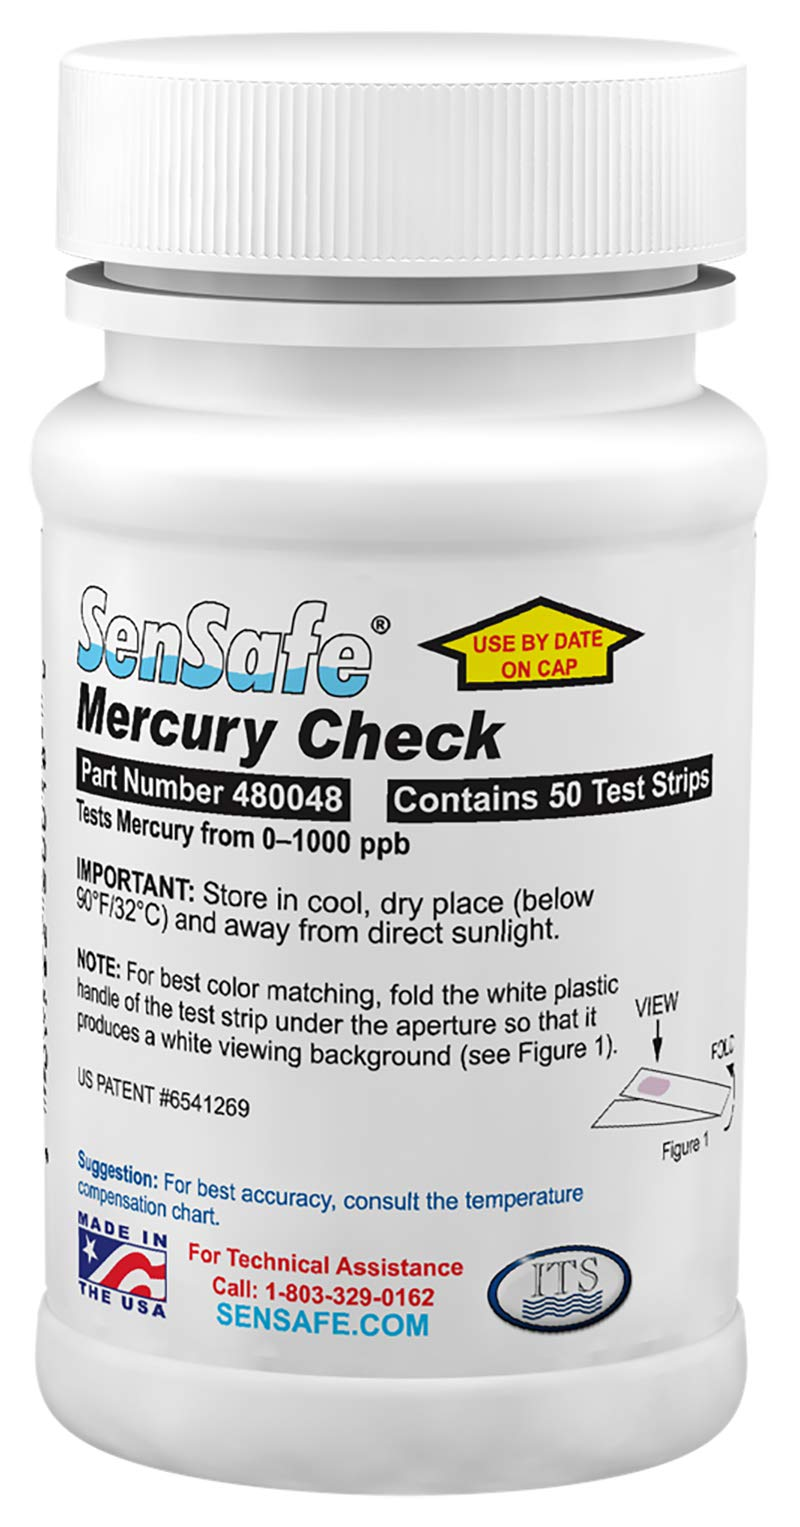 Industrial Test Systems WaterWorks 480048 Mercury Check, 2 Minutes and 30 Seconds Test Time, 50-1000 ppb Range (Bottle of 50) by Industrial Test Systems